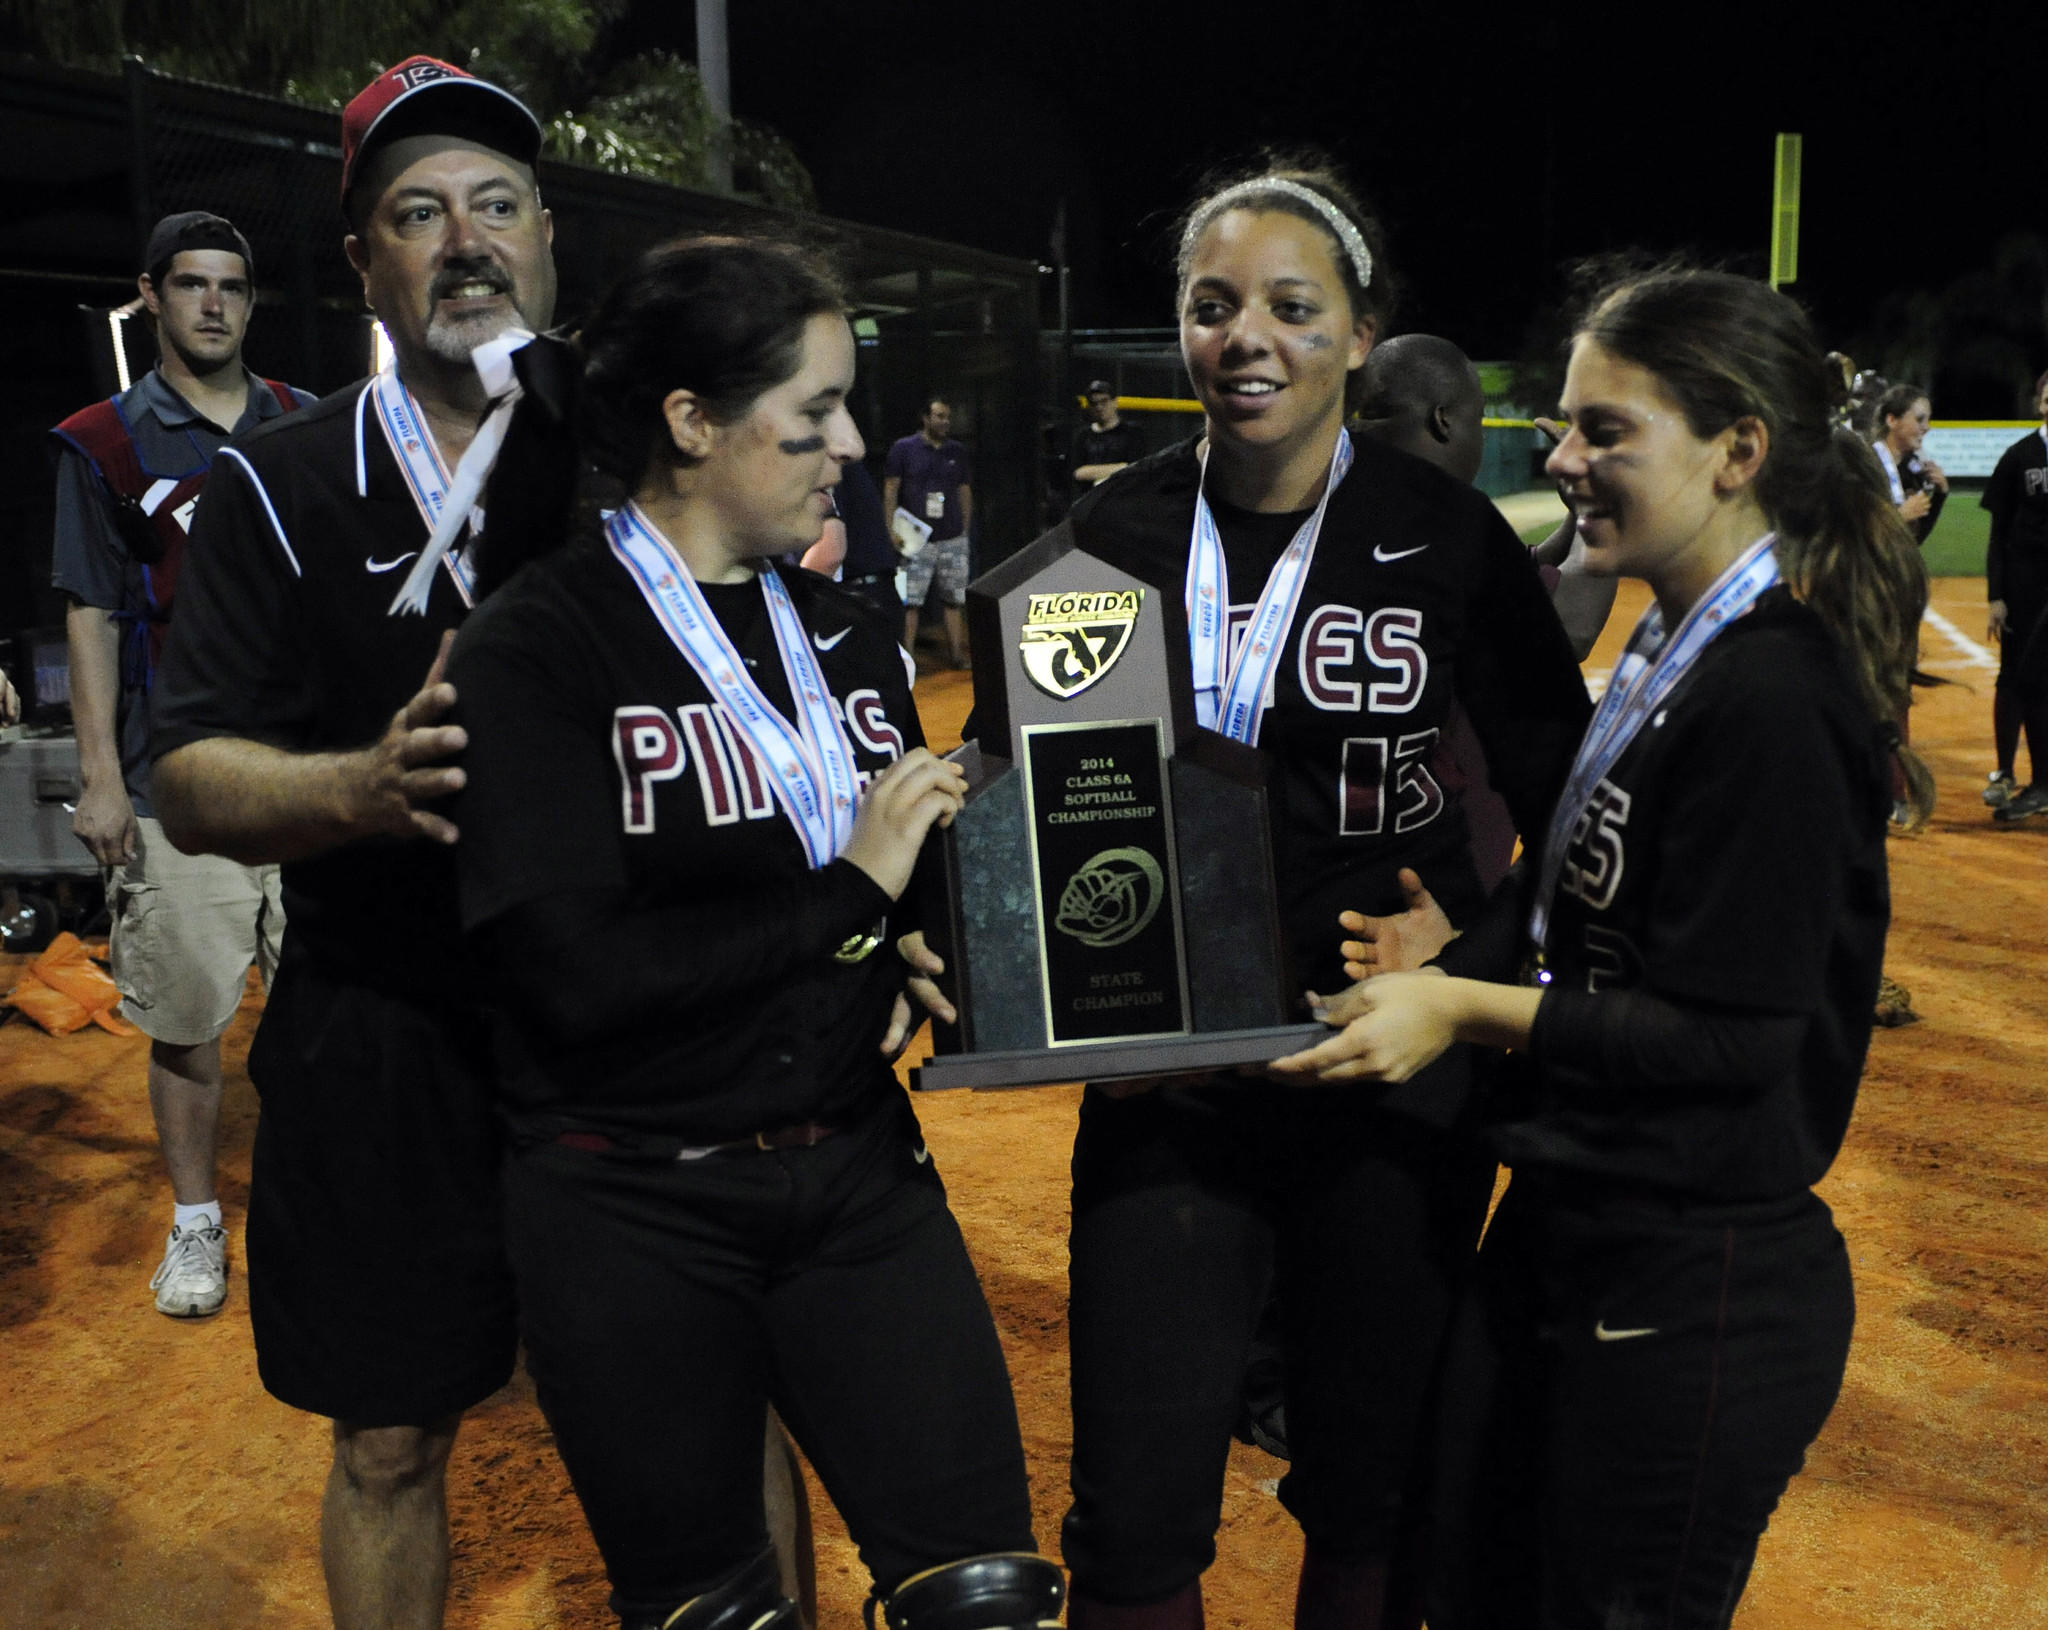 Pembroke Charter celebrates winning the Class 6A softball championship.